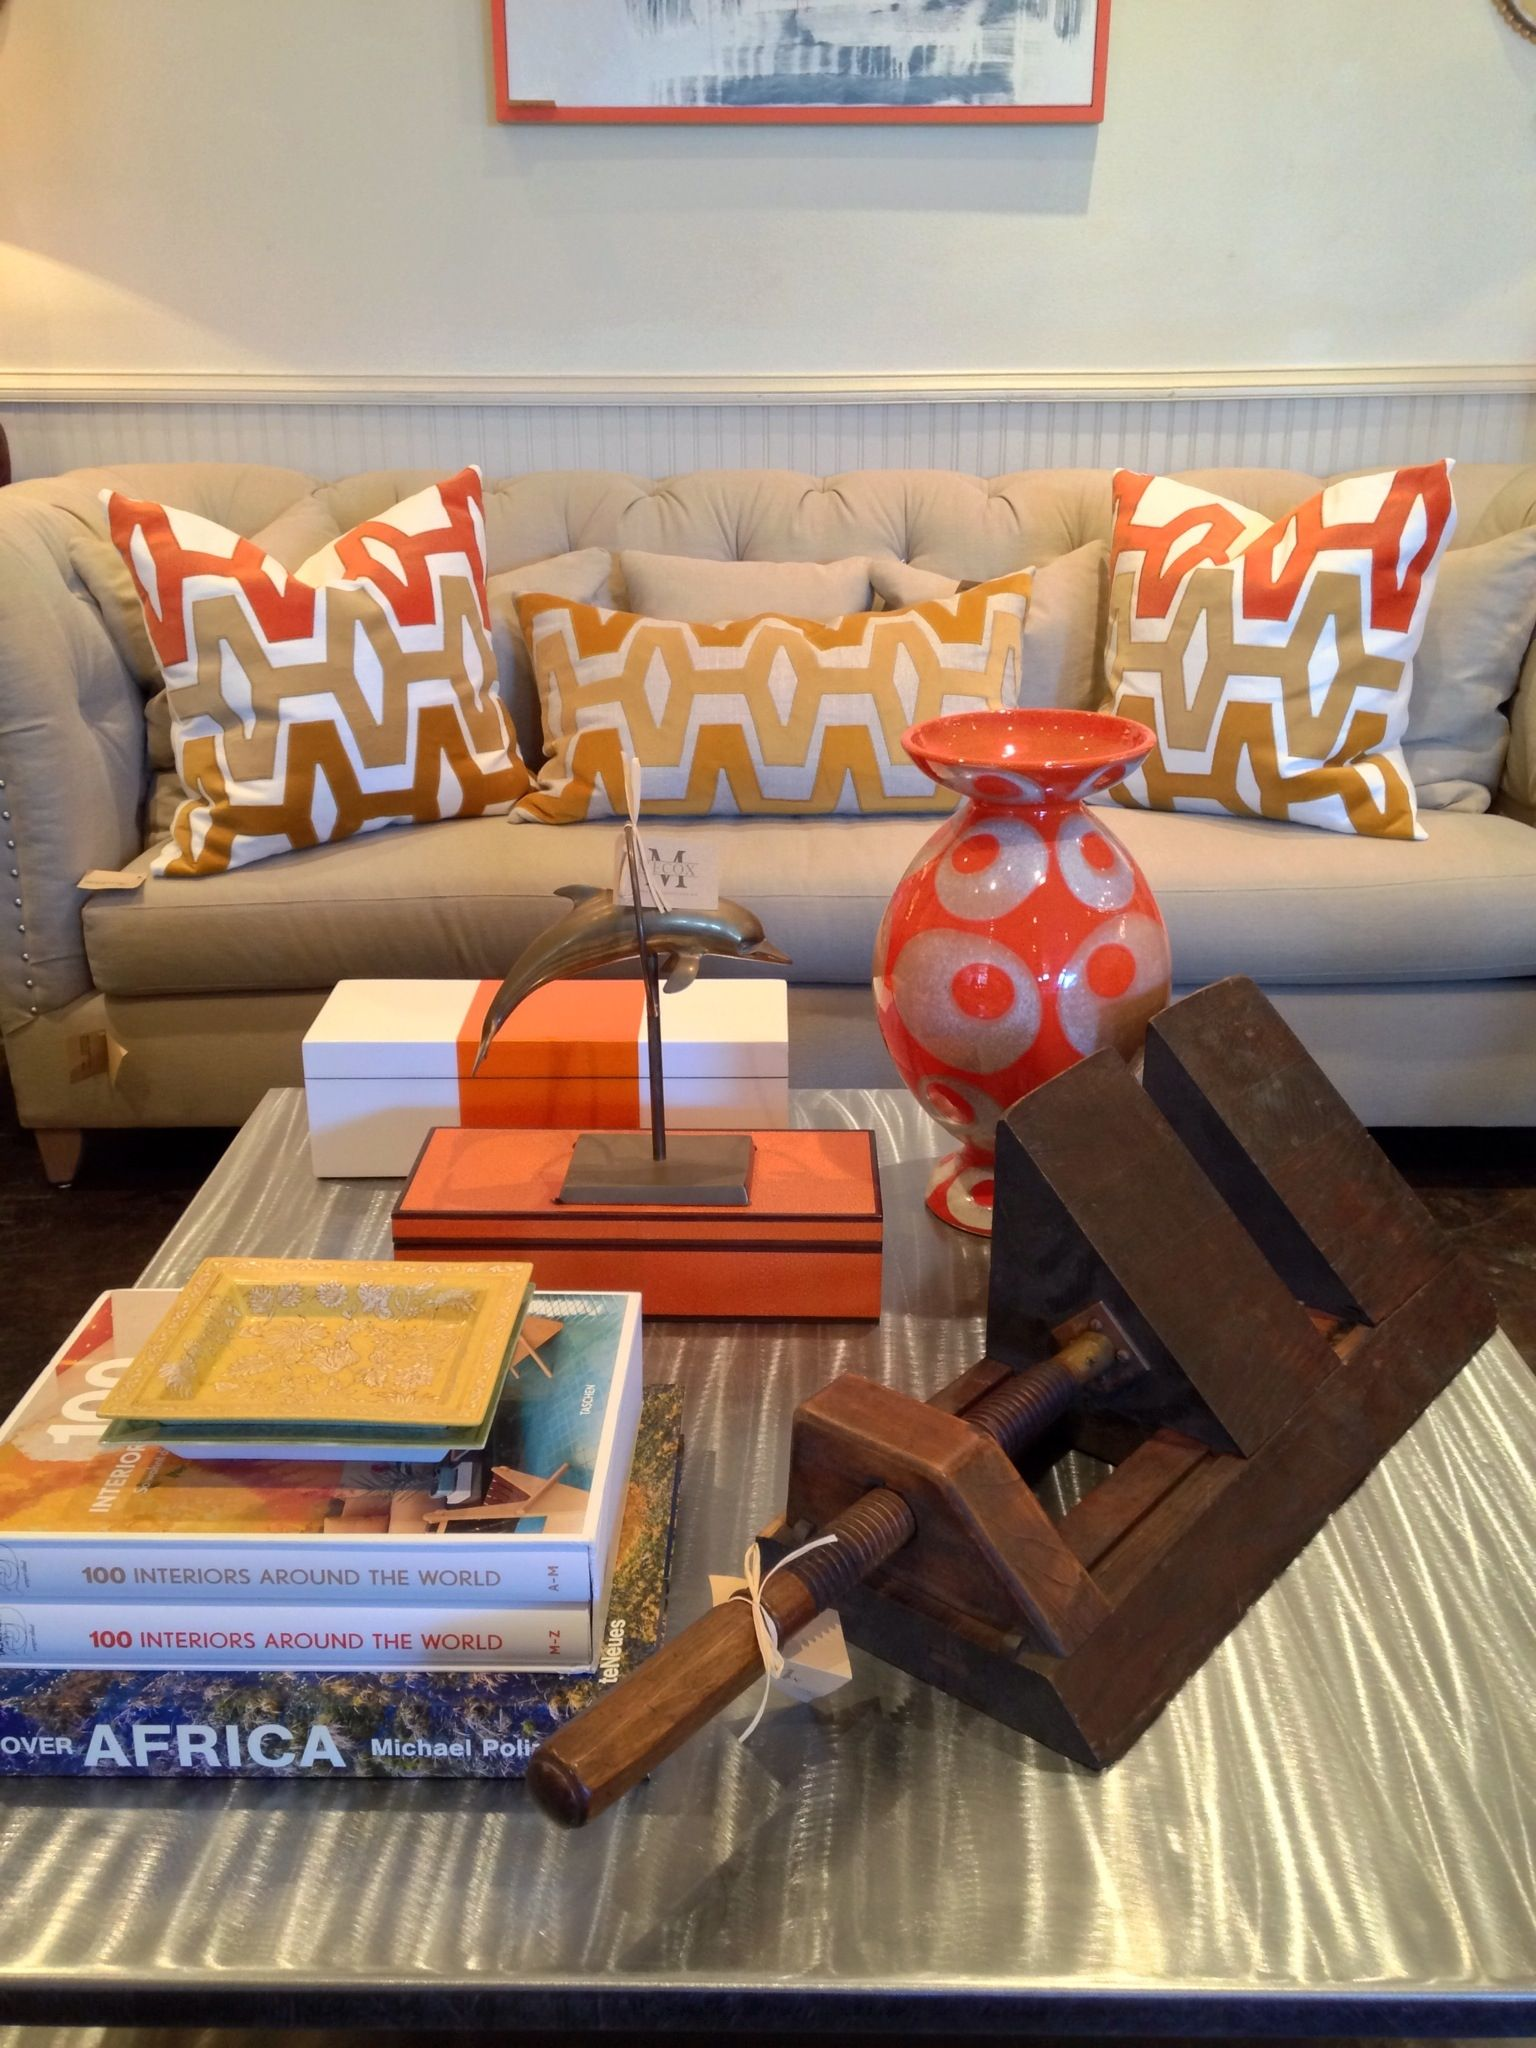 Neutral sofa palette with #coral accents and #vintage #wood #vice at #Dallas #Mecox #interiordesign #MecoxGardens #furniture #shopping #home #decor #design #room #designidea #antiques #garden